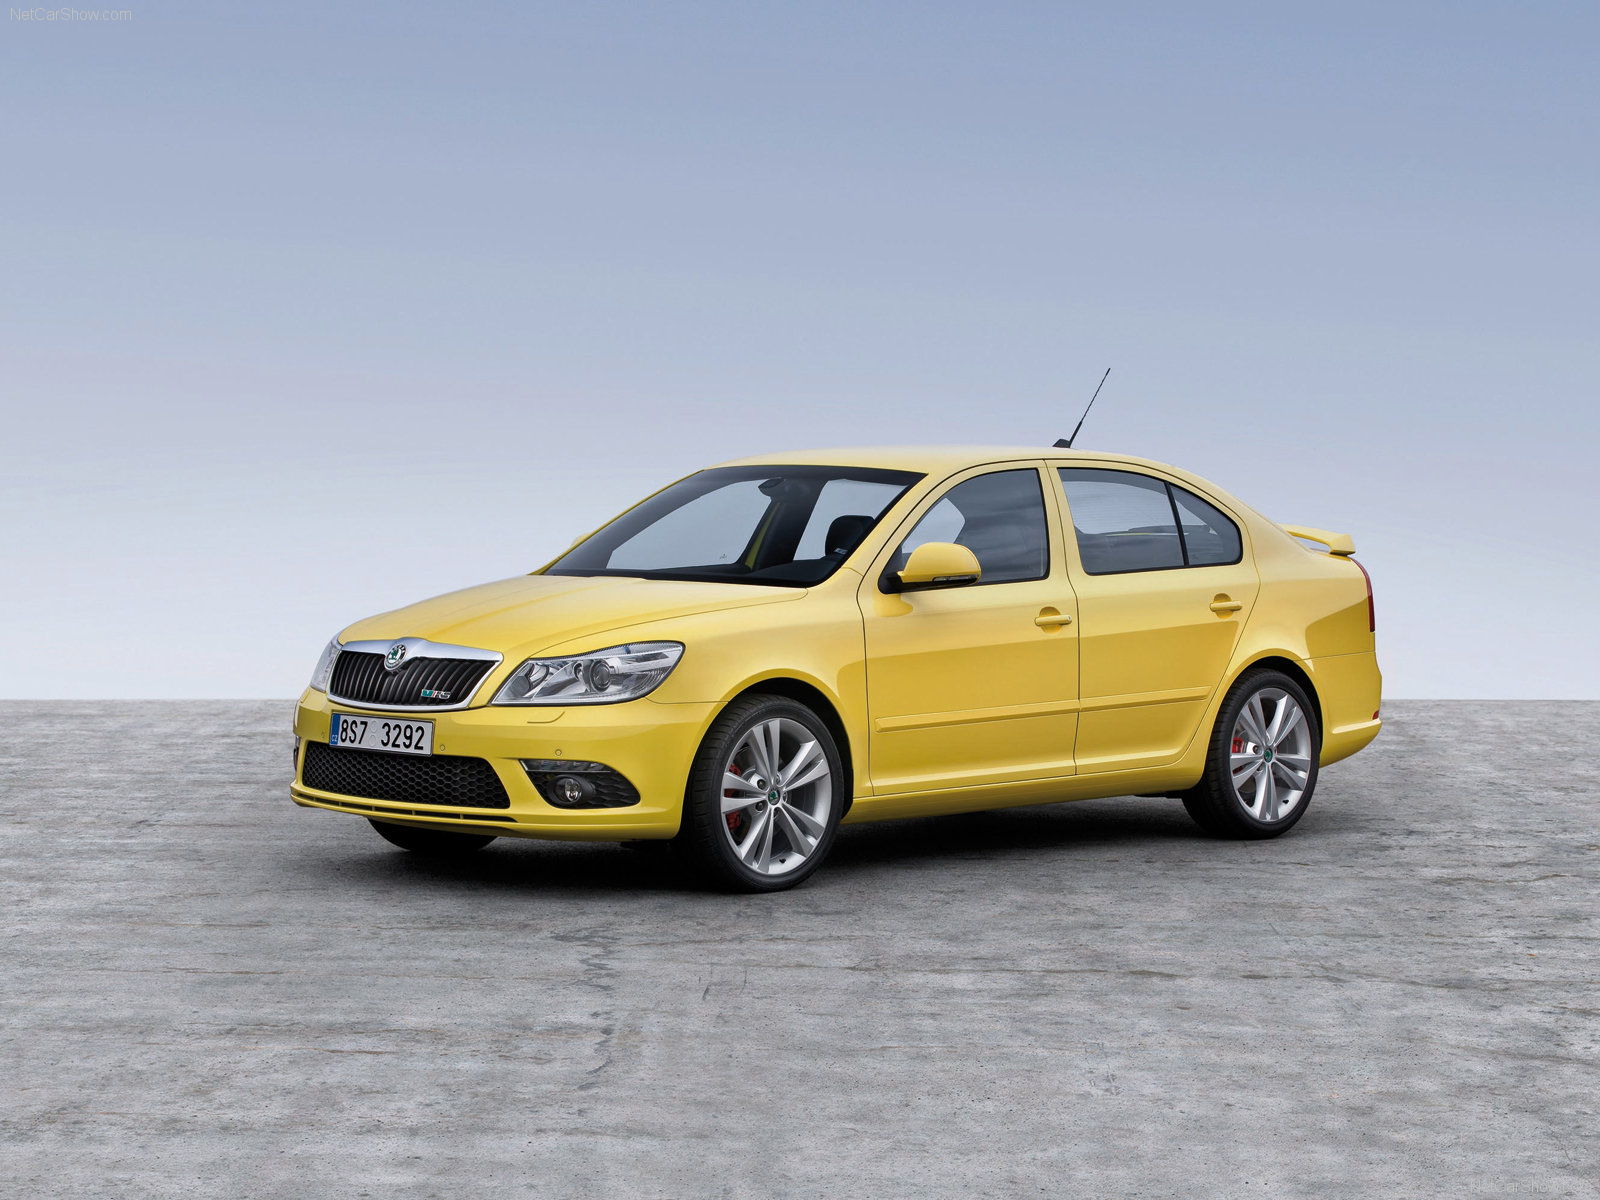 skoda octavia rs photos photo gallery page 4 carsbase